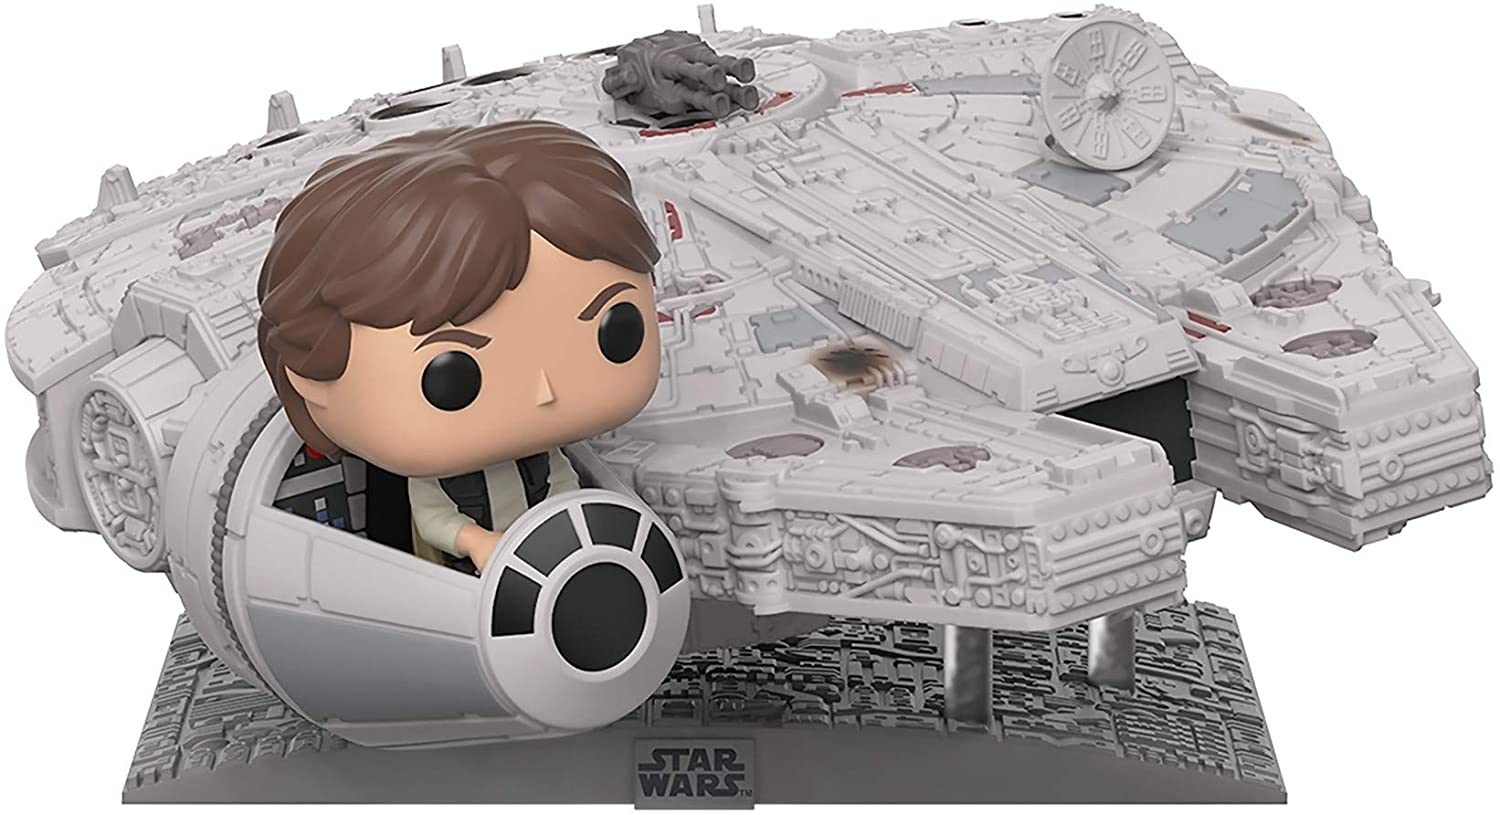 Pop! Movies Deluxe Han Solo (In The Millennium Falcon): Star Wars (Special Edition) #321 - Funko